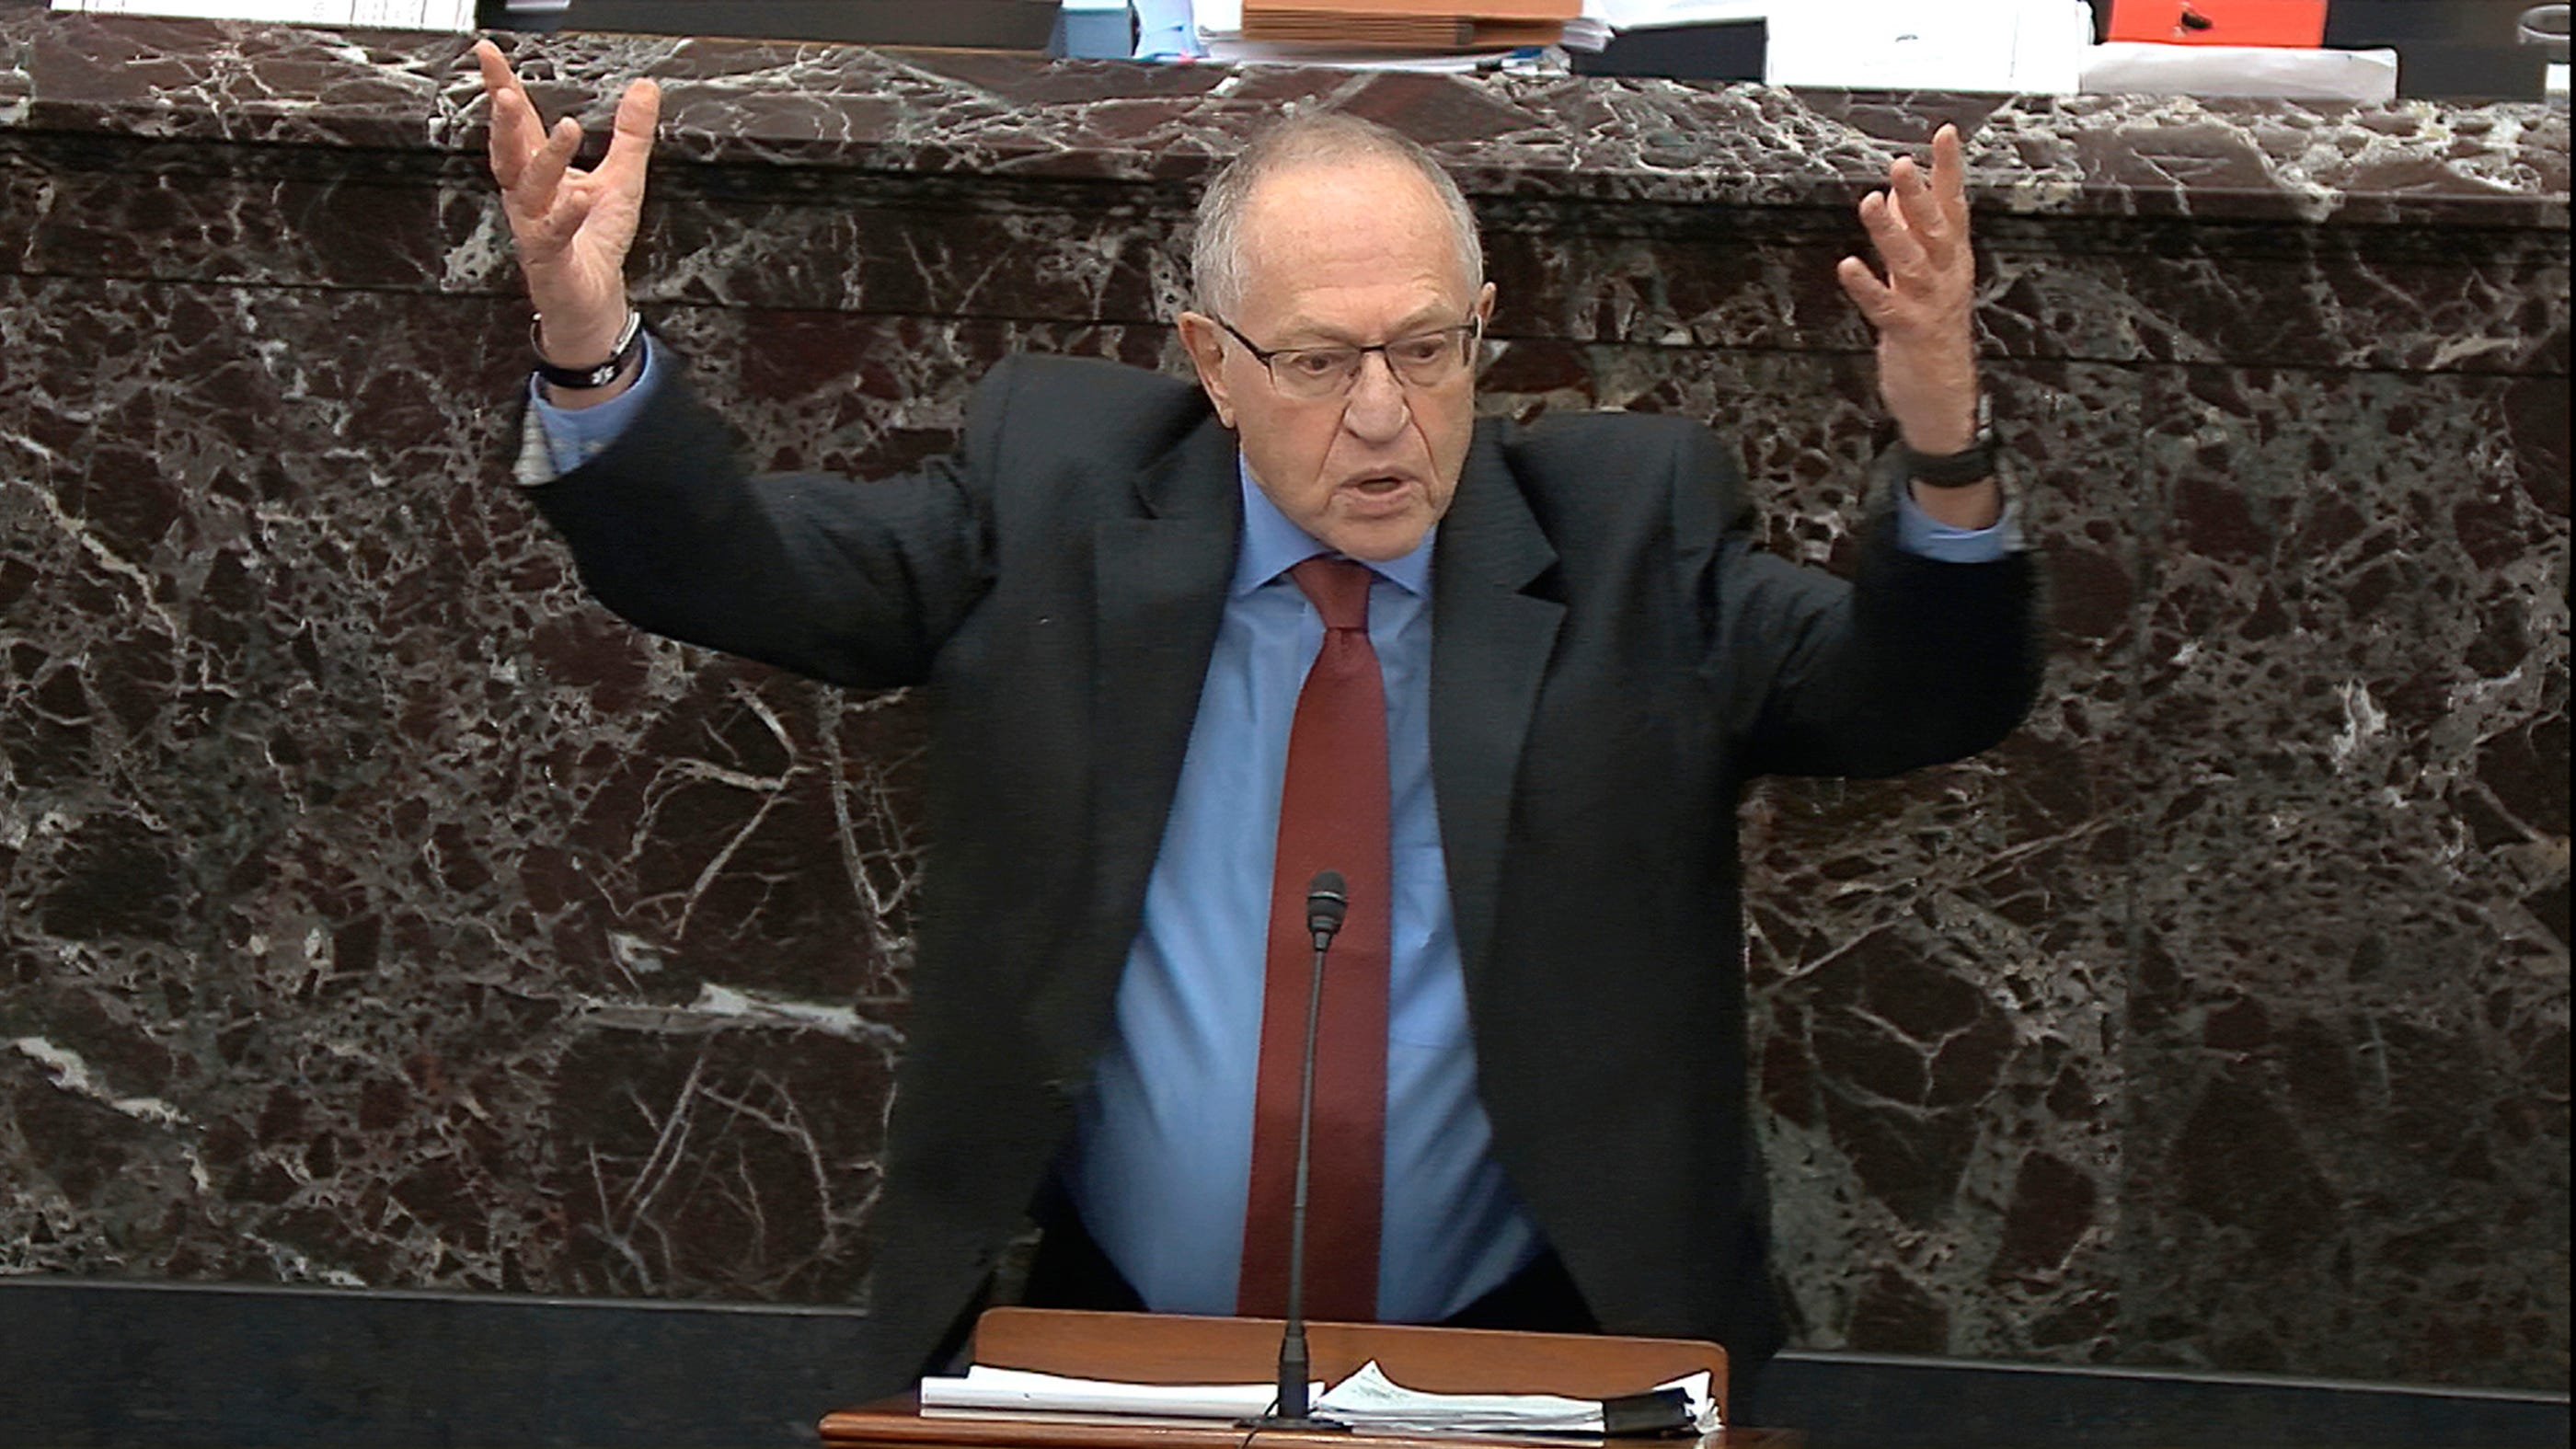 Trump lawyer Dershowitz argues president can't be impeached for an act he thinks will help his re-election thumbnail